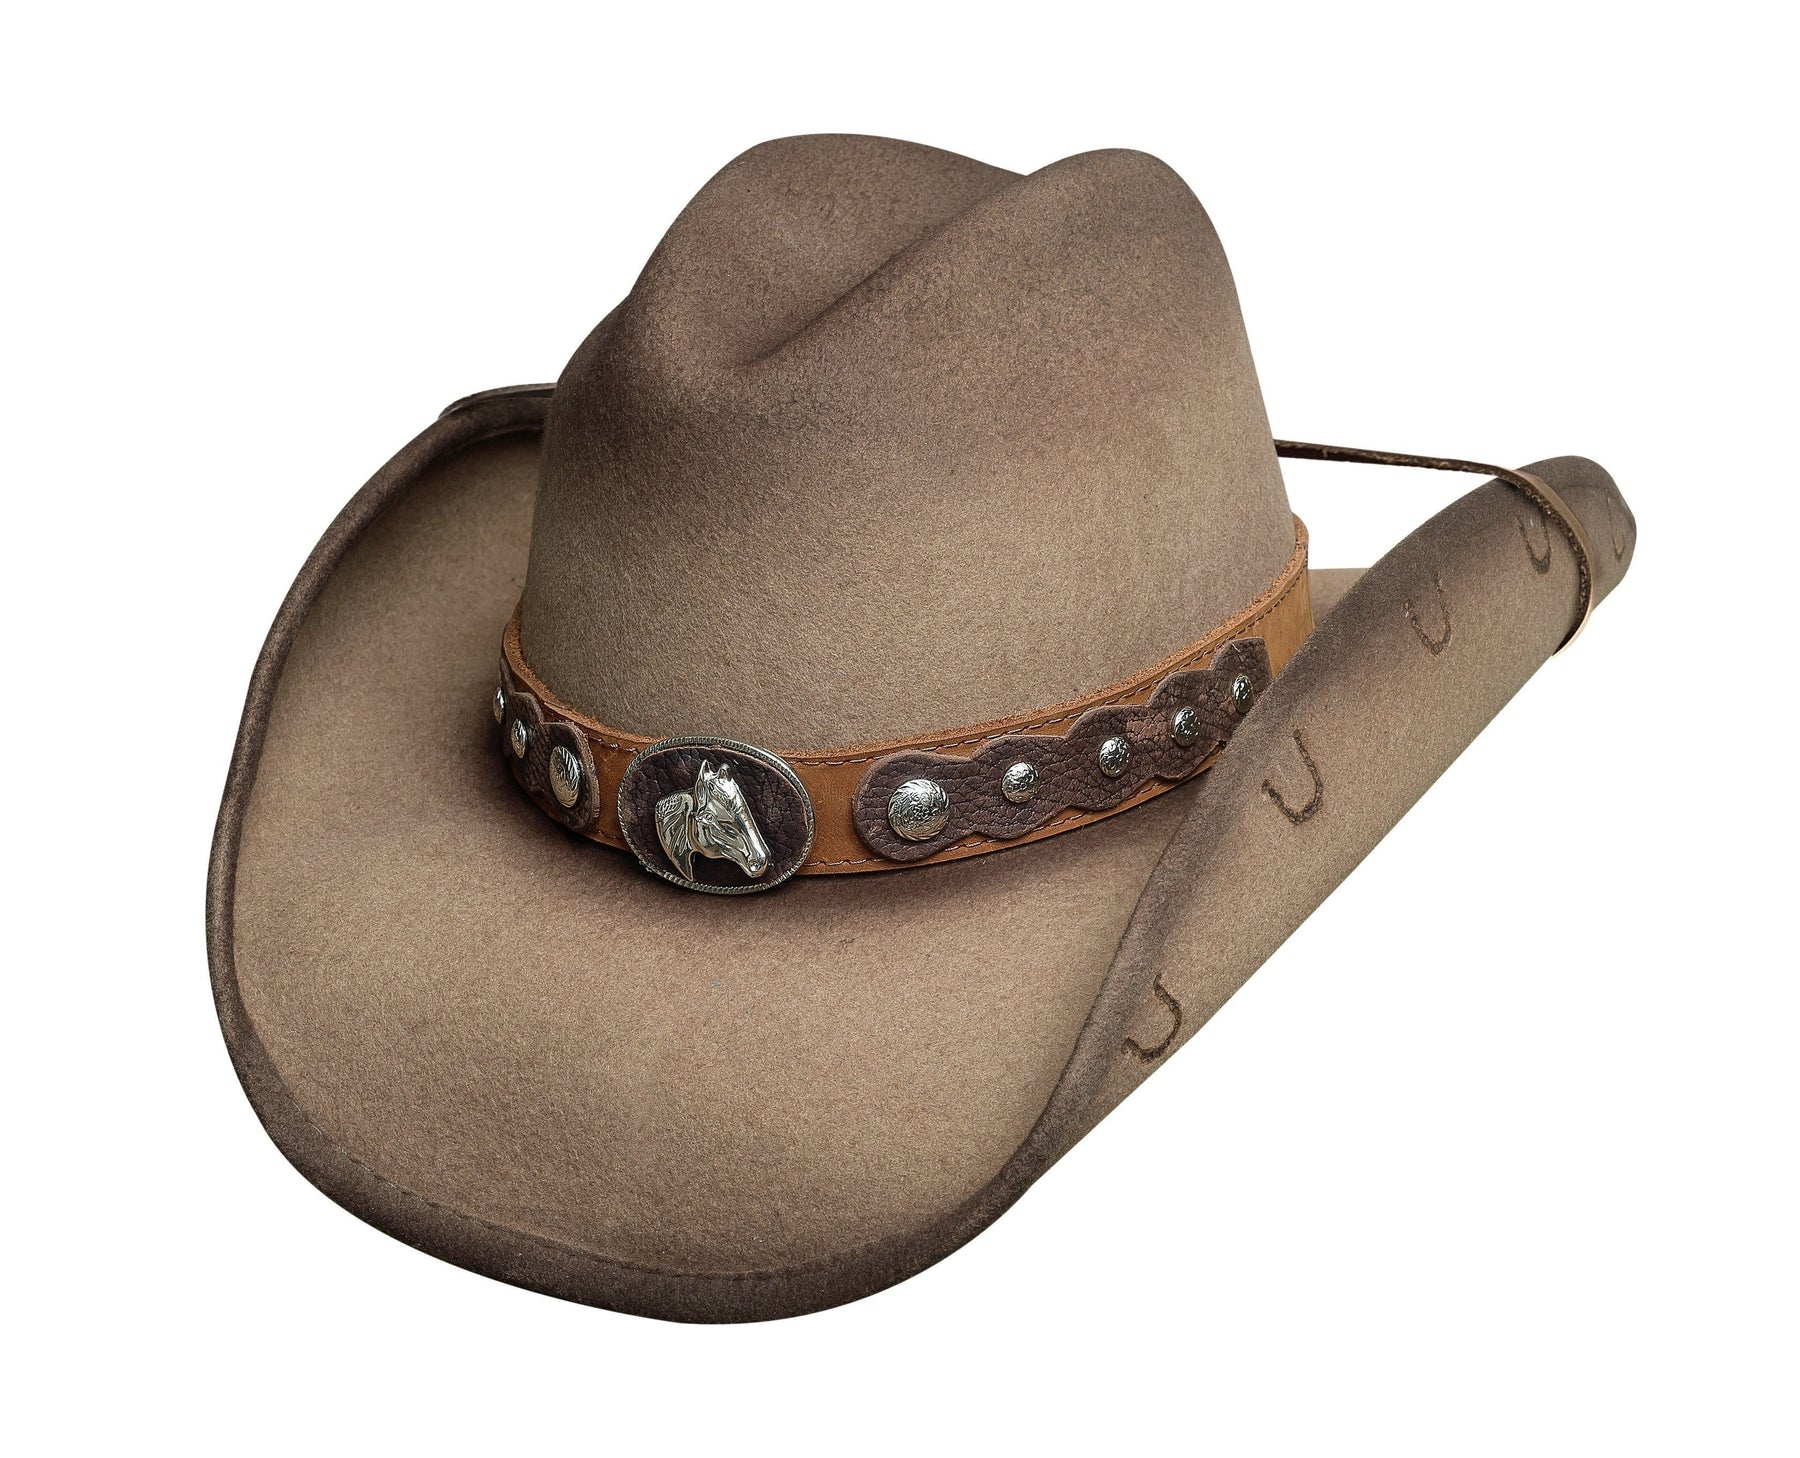 Bullhide Hats Sunfisher – Tan Cowboy/girl Hat ACC.HAT WOOL FELT BULLHIDE HAT CO.